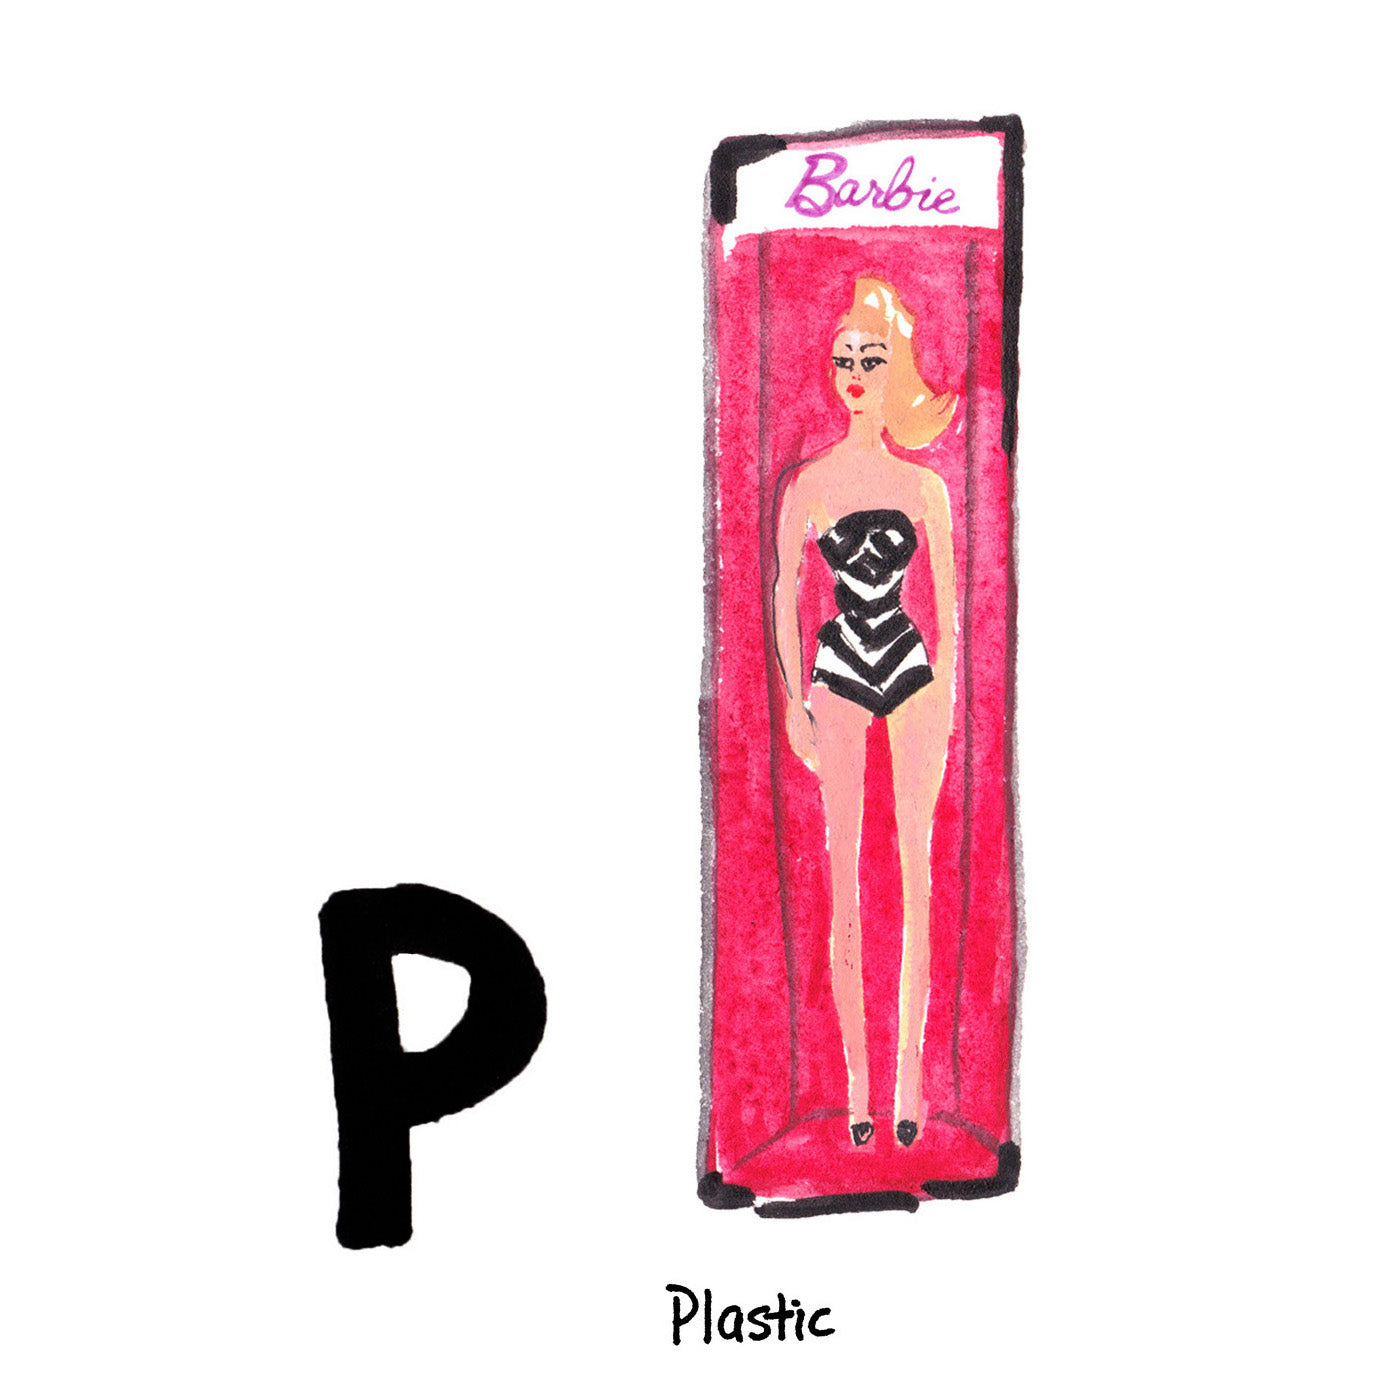 P is for Plastic. The Barbie doll was created in California in 1959 by the inventor Ruth Handler.